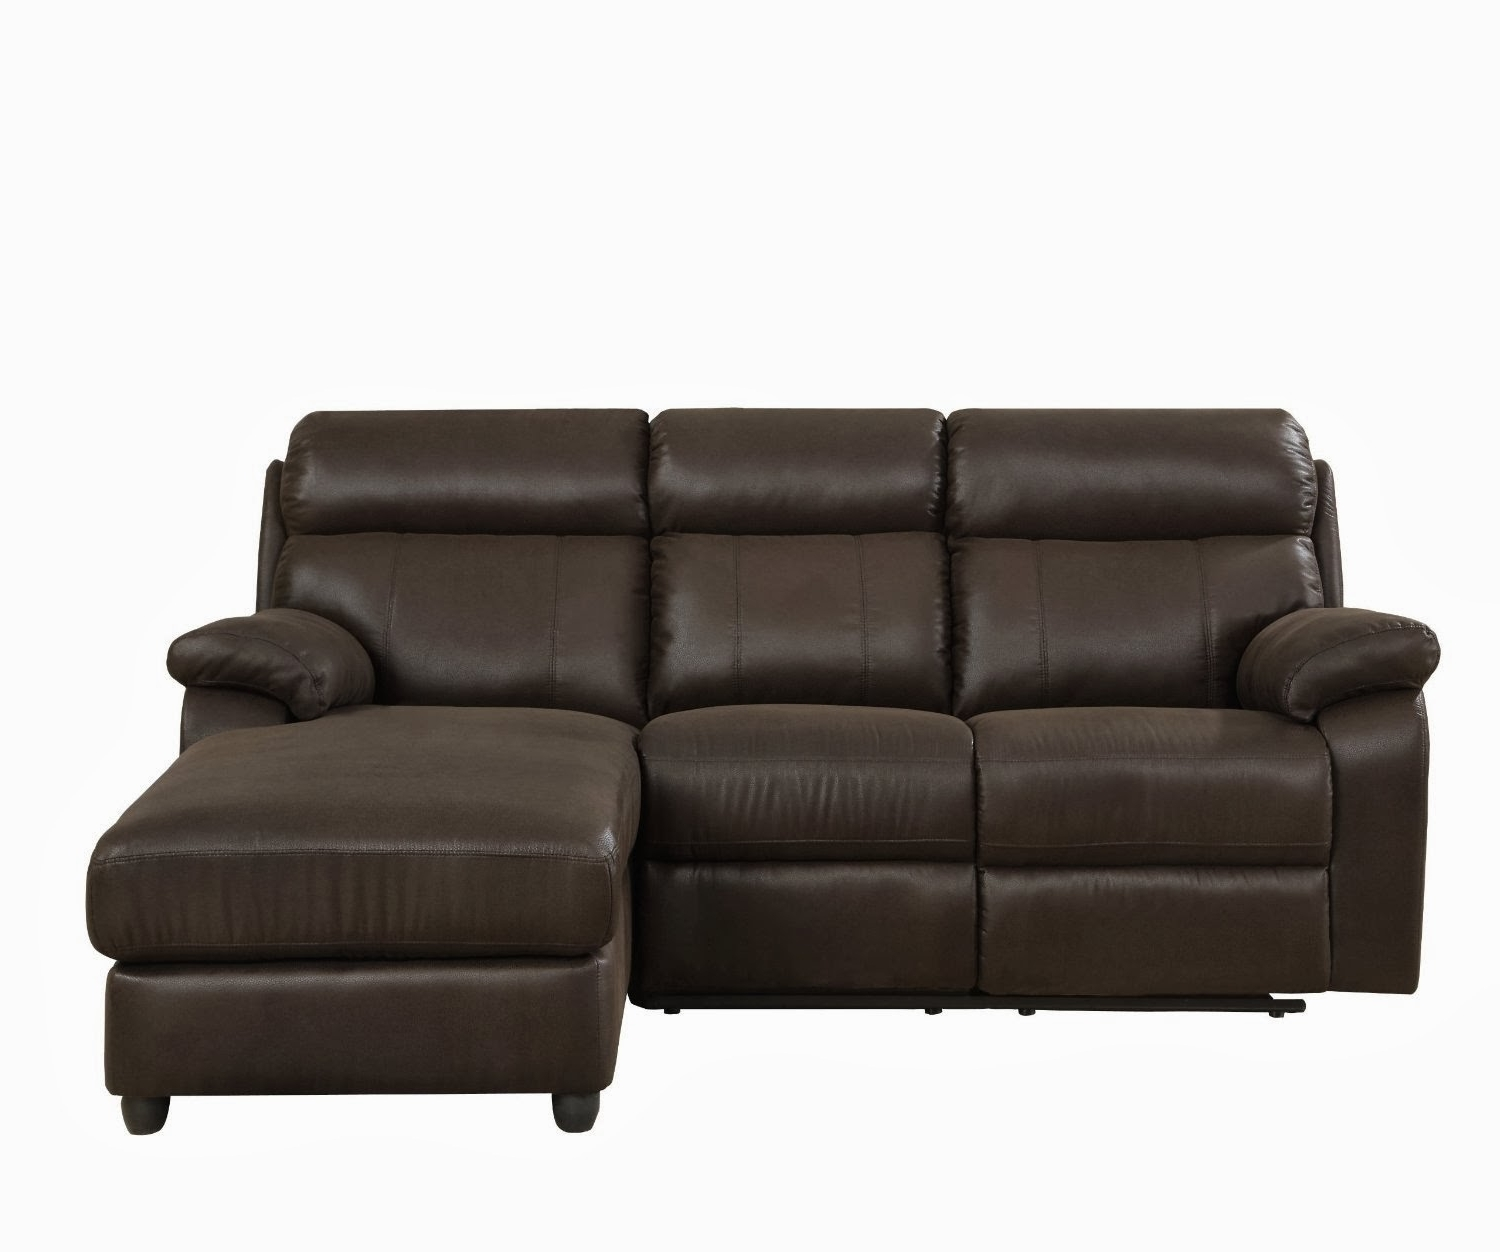 2017 Small High Back Leather Sectional Sofa With Chaise For 3 – Decofurnish For Sectional Sofas With High Backs (View 15 of 15)